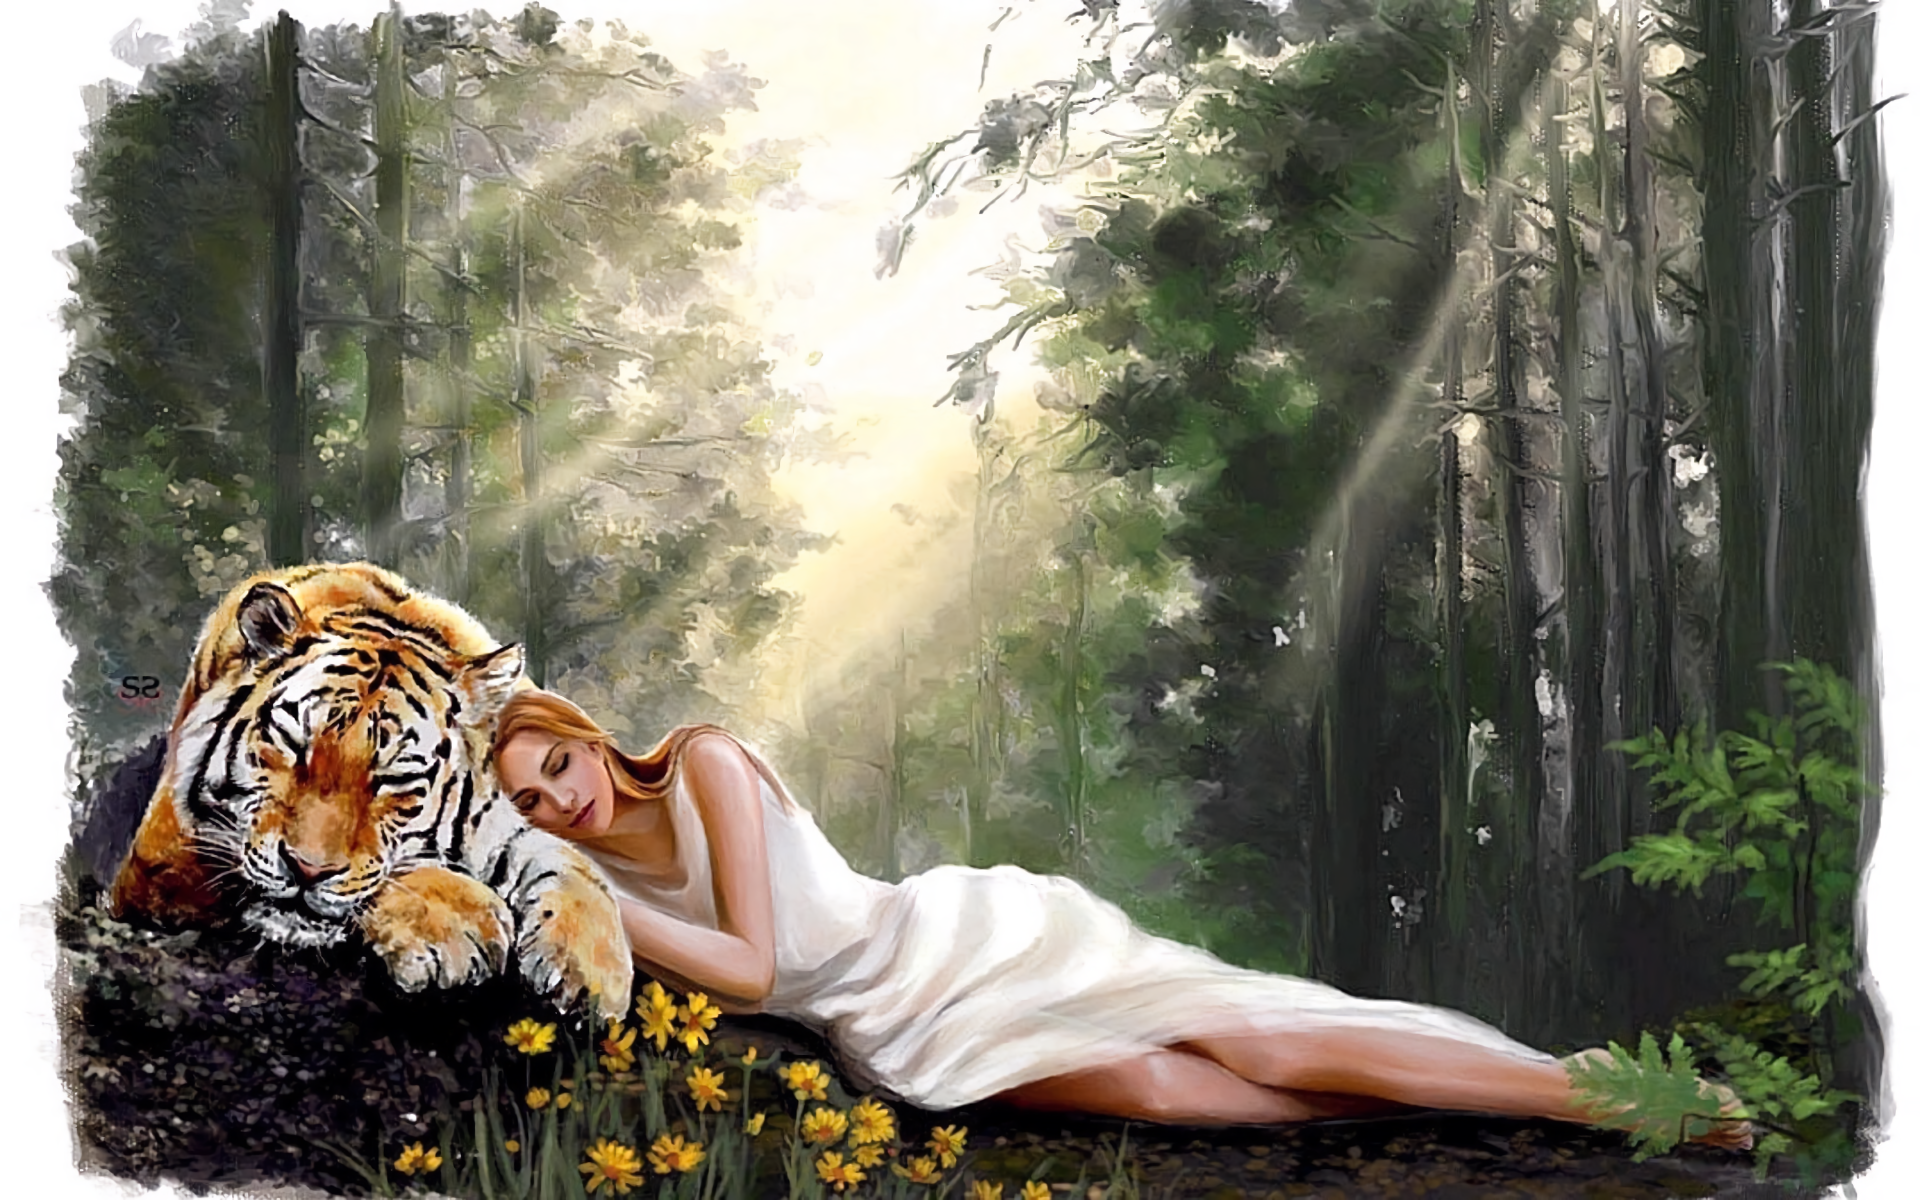 Napping in the Forest HD Wallpaper | Background Image ...